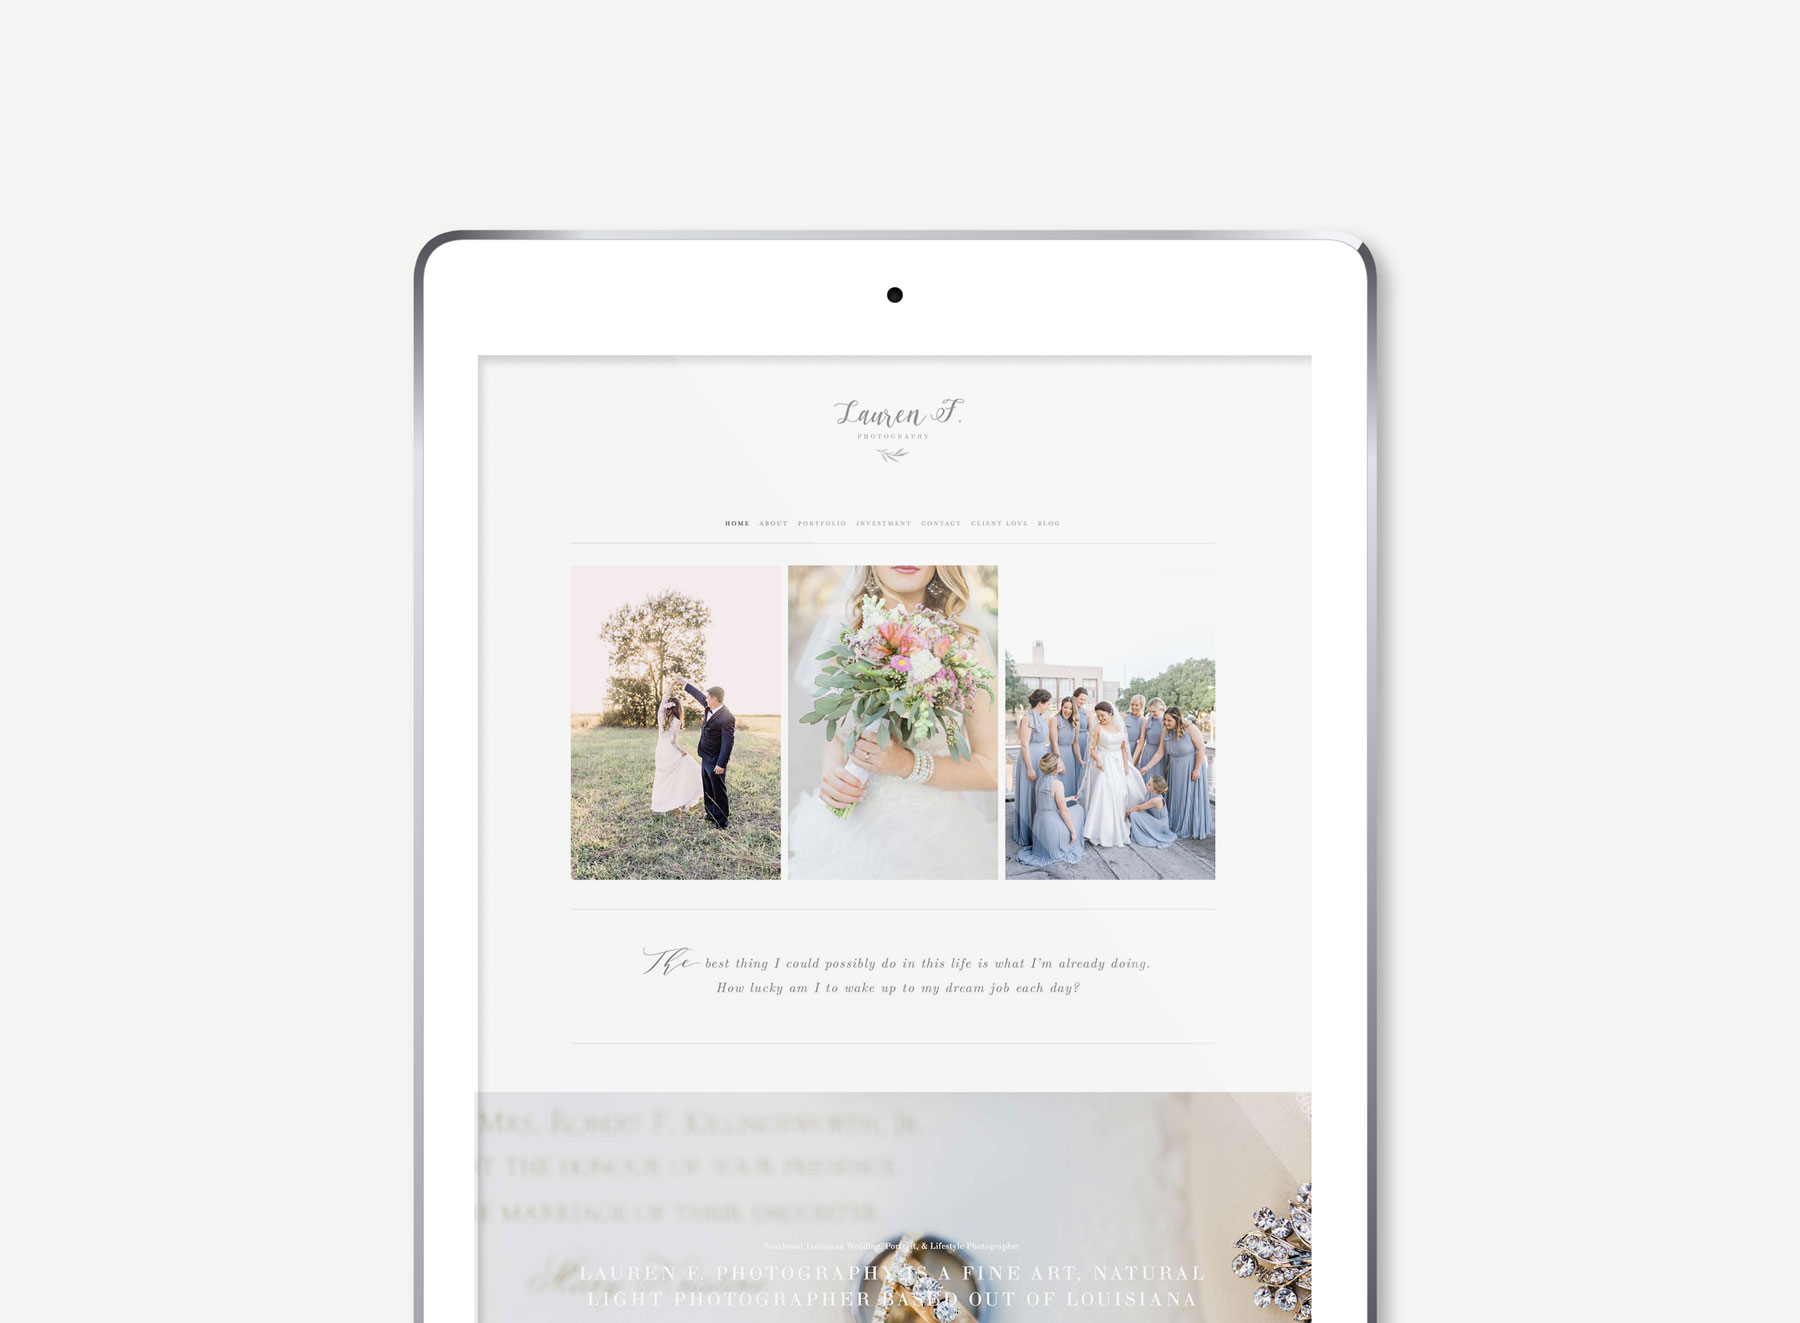 squarespace-photographer-website-design-templates.jpg